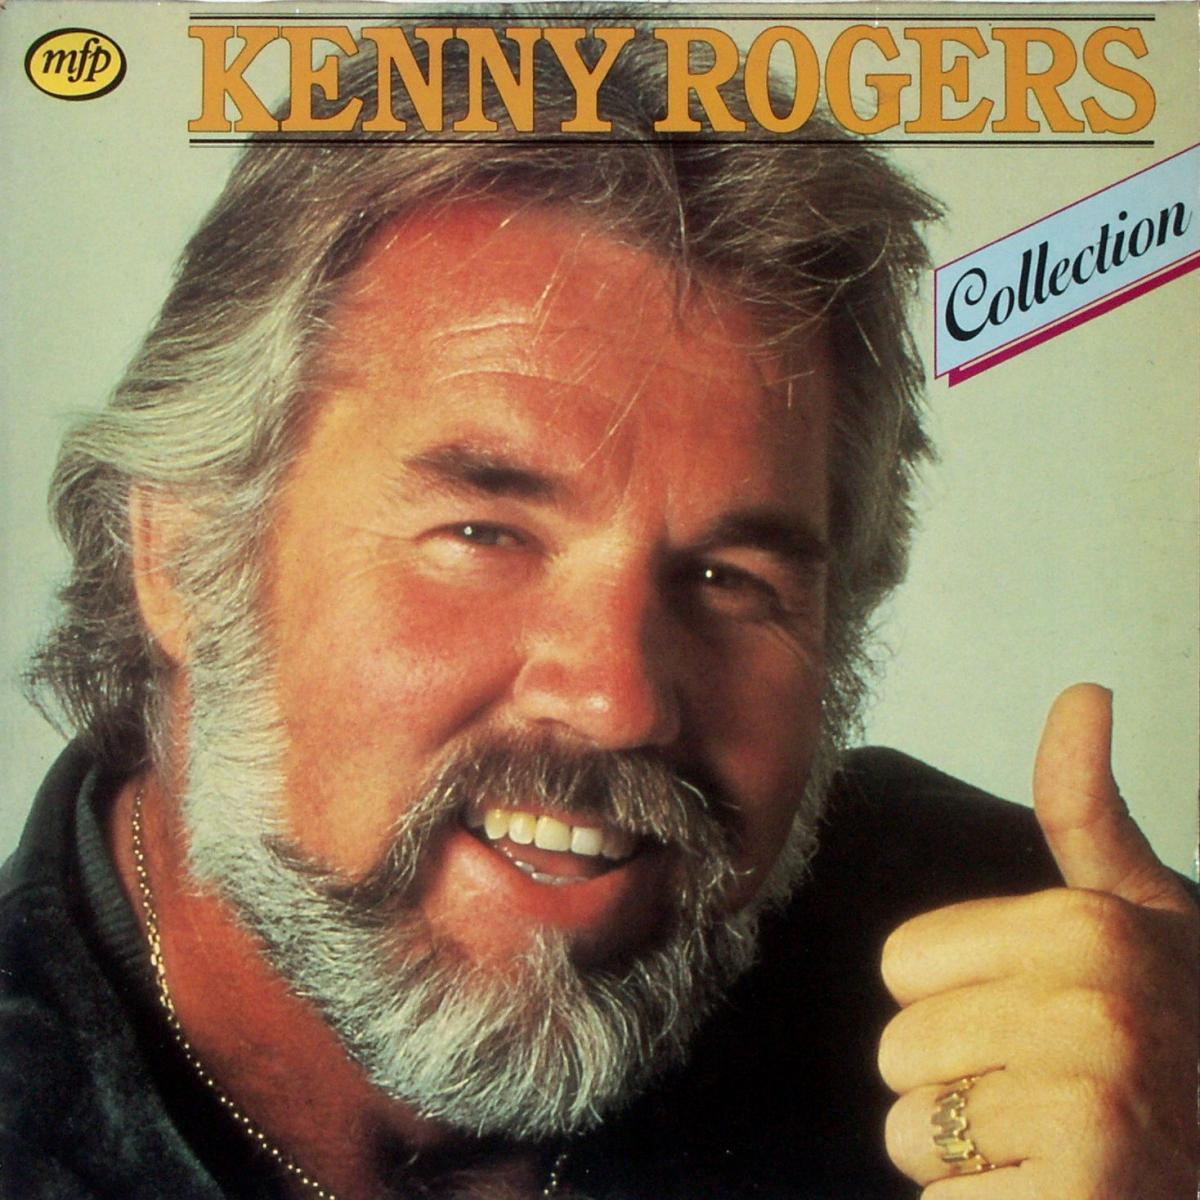 Rogers, Kenny - Collection [LP]